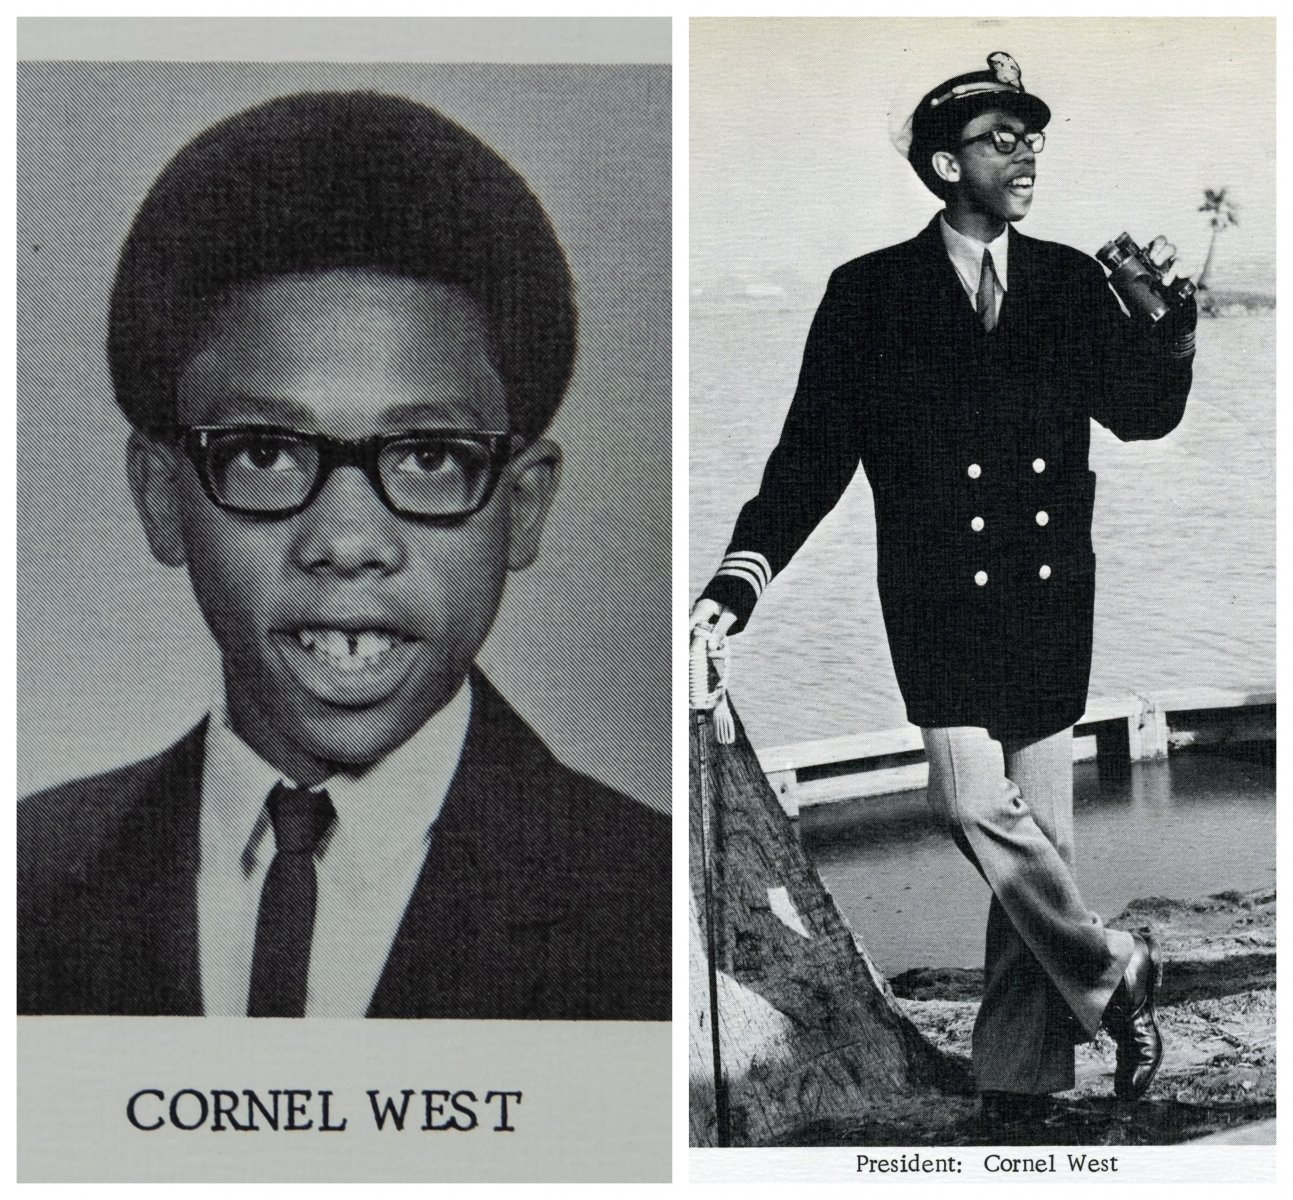 In his Kennedy High School senior yearbook from 1970, West looks studious in his official portrait (left), but shows an early flair for showmanship in his nautical-themed portrait as class president (right). (Photos courtesy of John F. Kennedy High School)